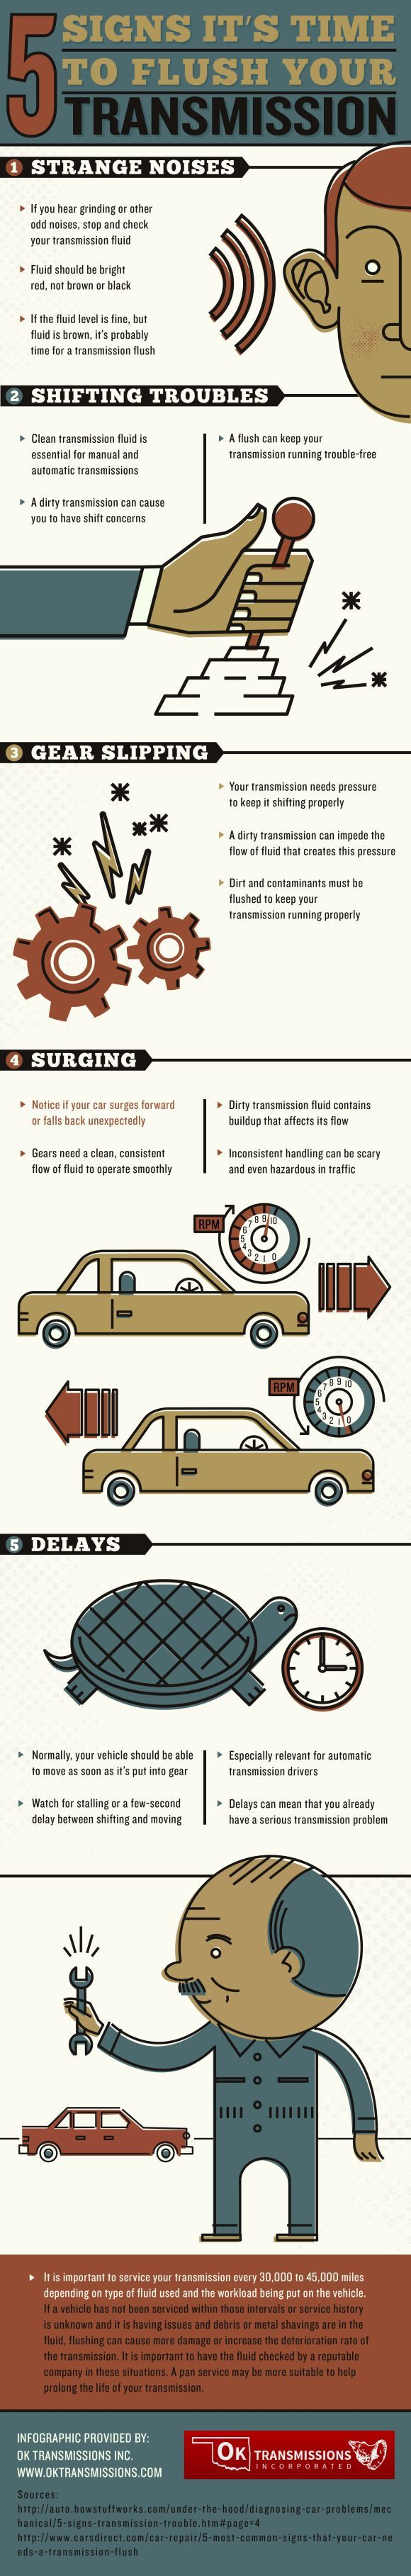 5 signs its time to flush your transmission